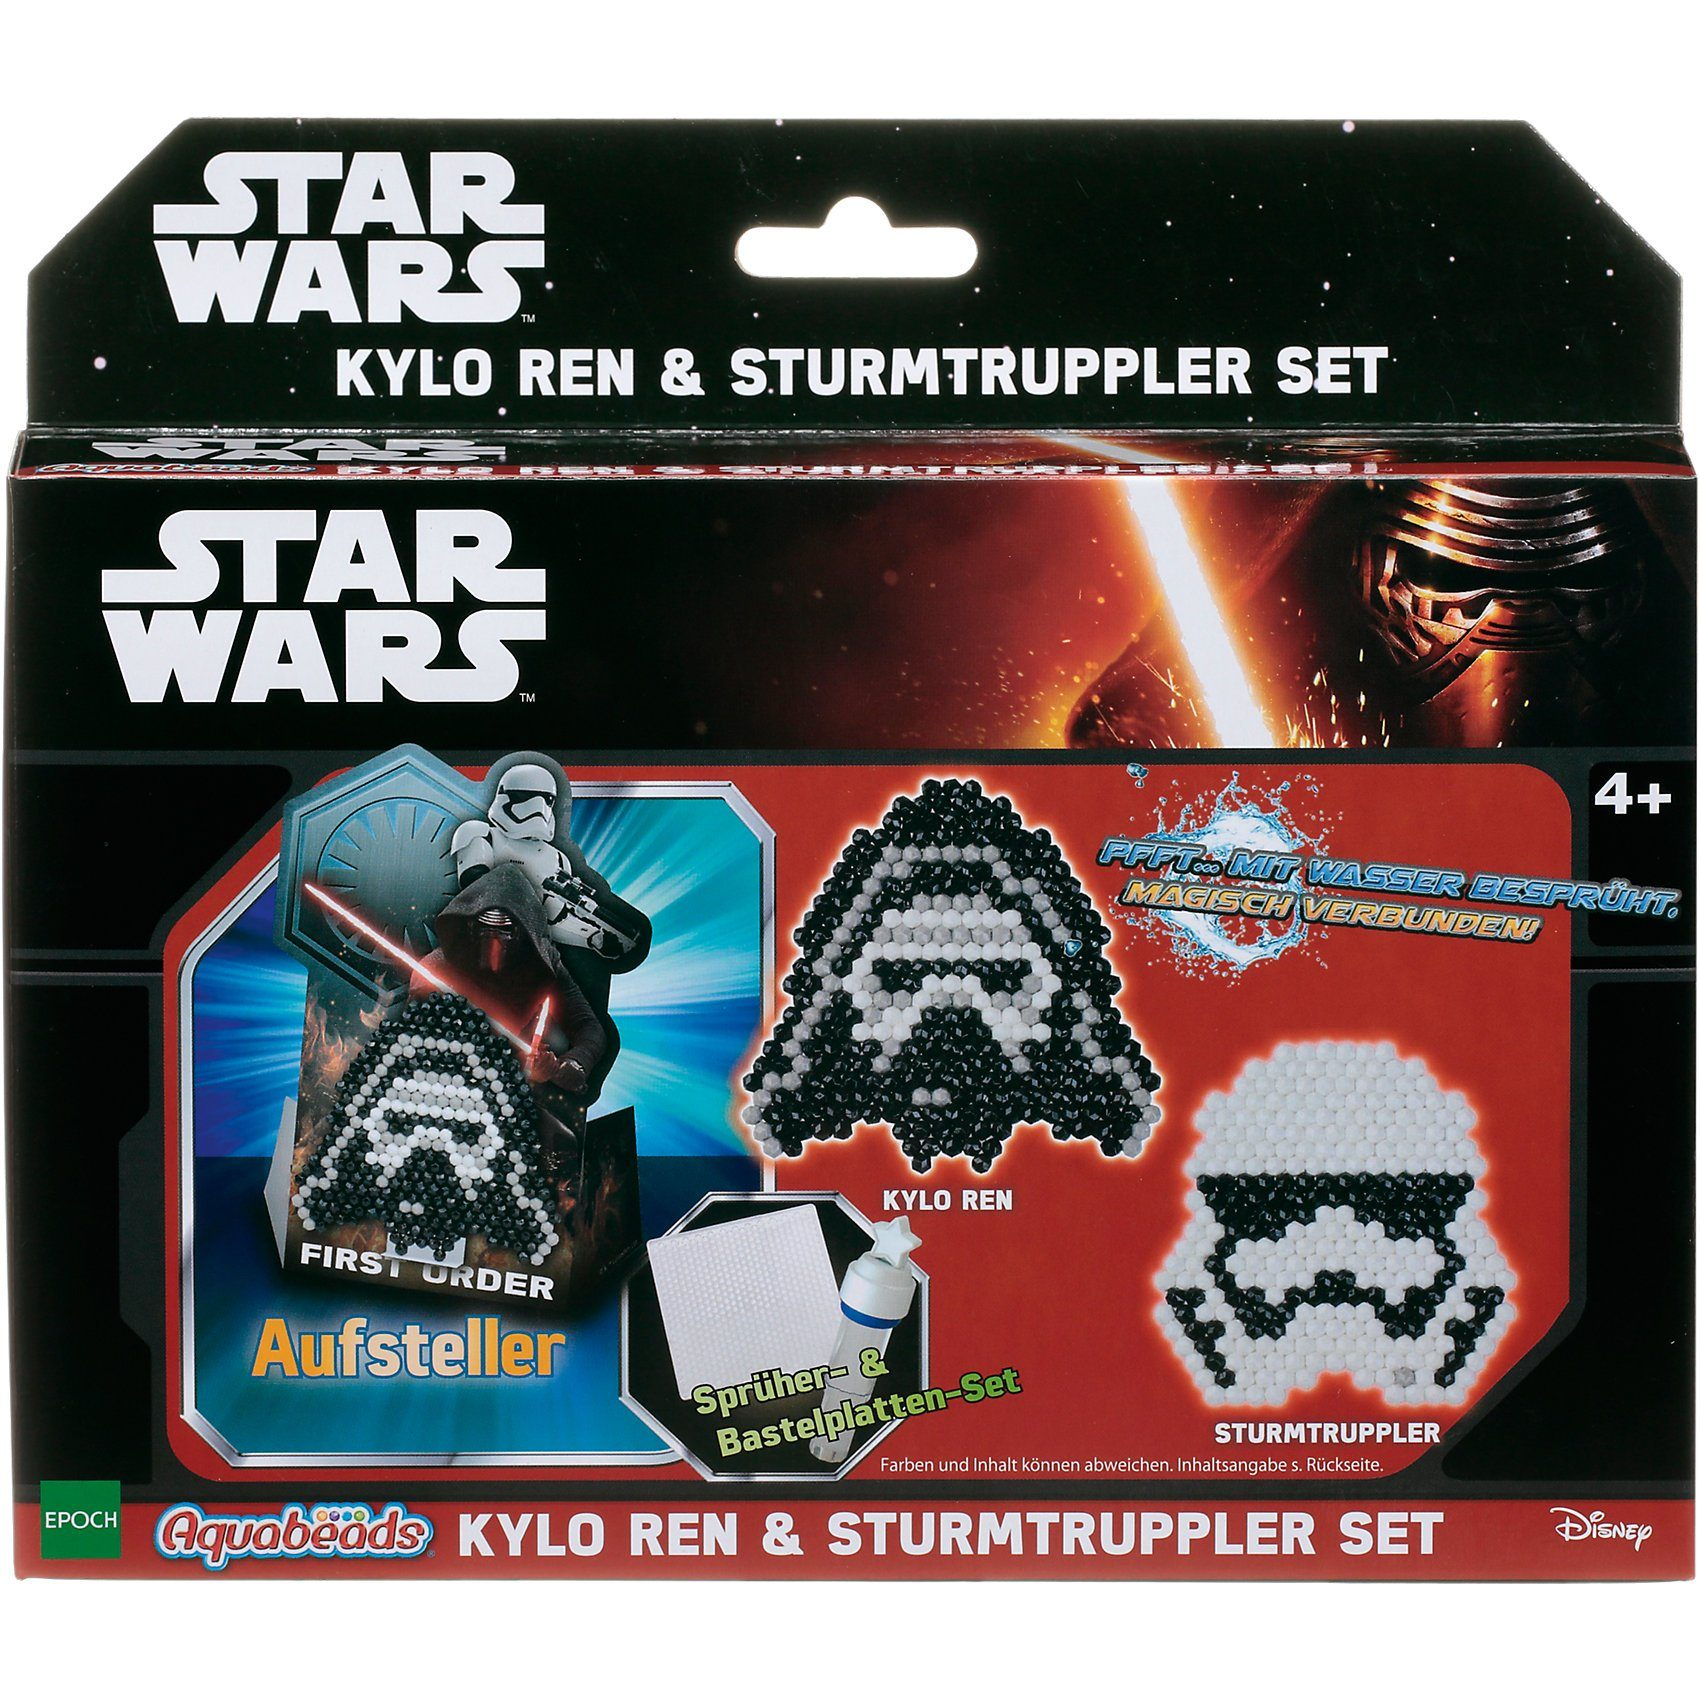 Epoch Traumwiesen Aquabeads Star Wars Kylo Ren & Sturmtruppler Set